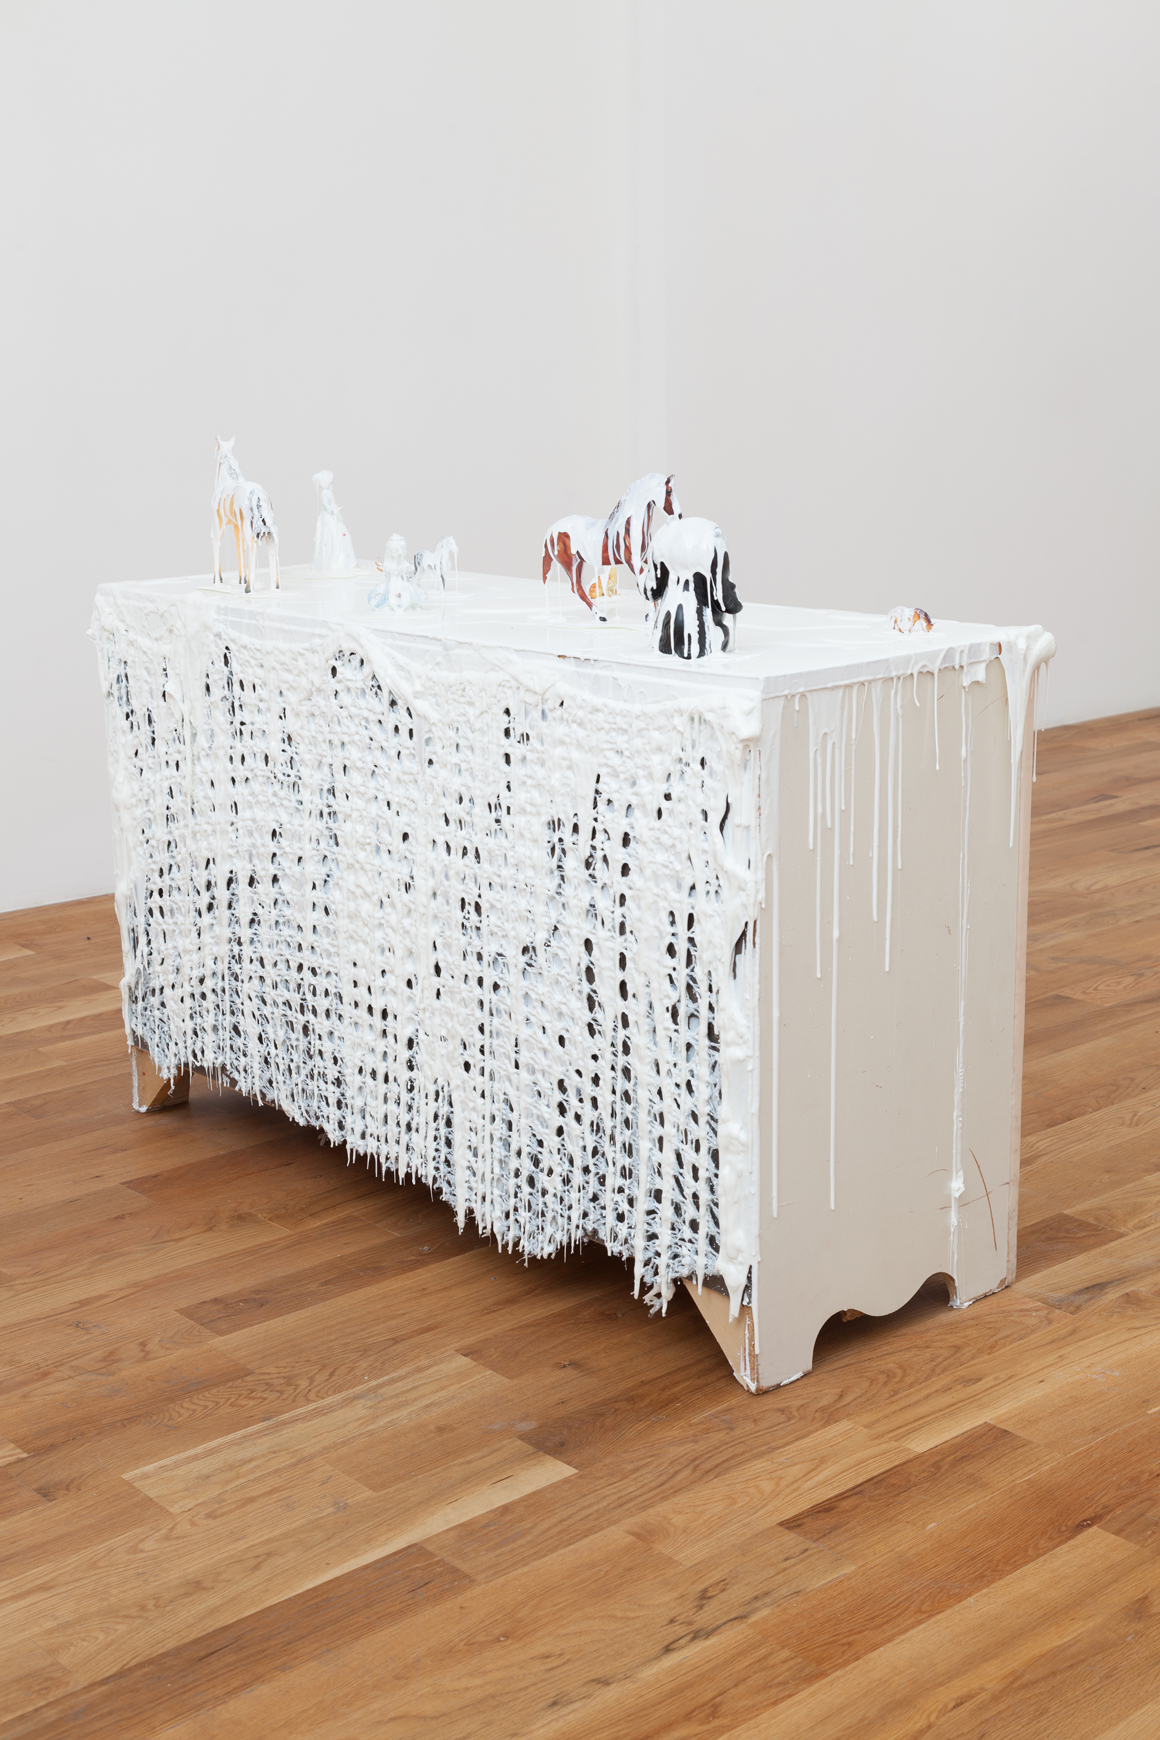 """<p><em>A Few Steps Back</em><br><span class=""""name"""">Amber Cobb</span><br>(view 3)<br><a class='inquire' href='mailto:info@gildargallery.com?subject=Artwork Inquiry ACOB0048&body=I am interested in finding out more about A Few Steps Back by Amber Cobb'>Inquire</a></p>"""